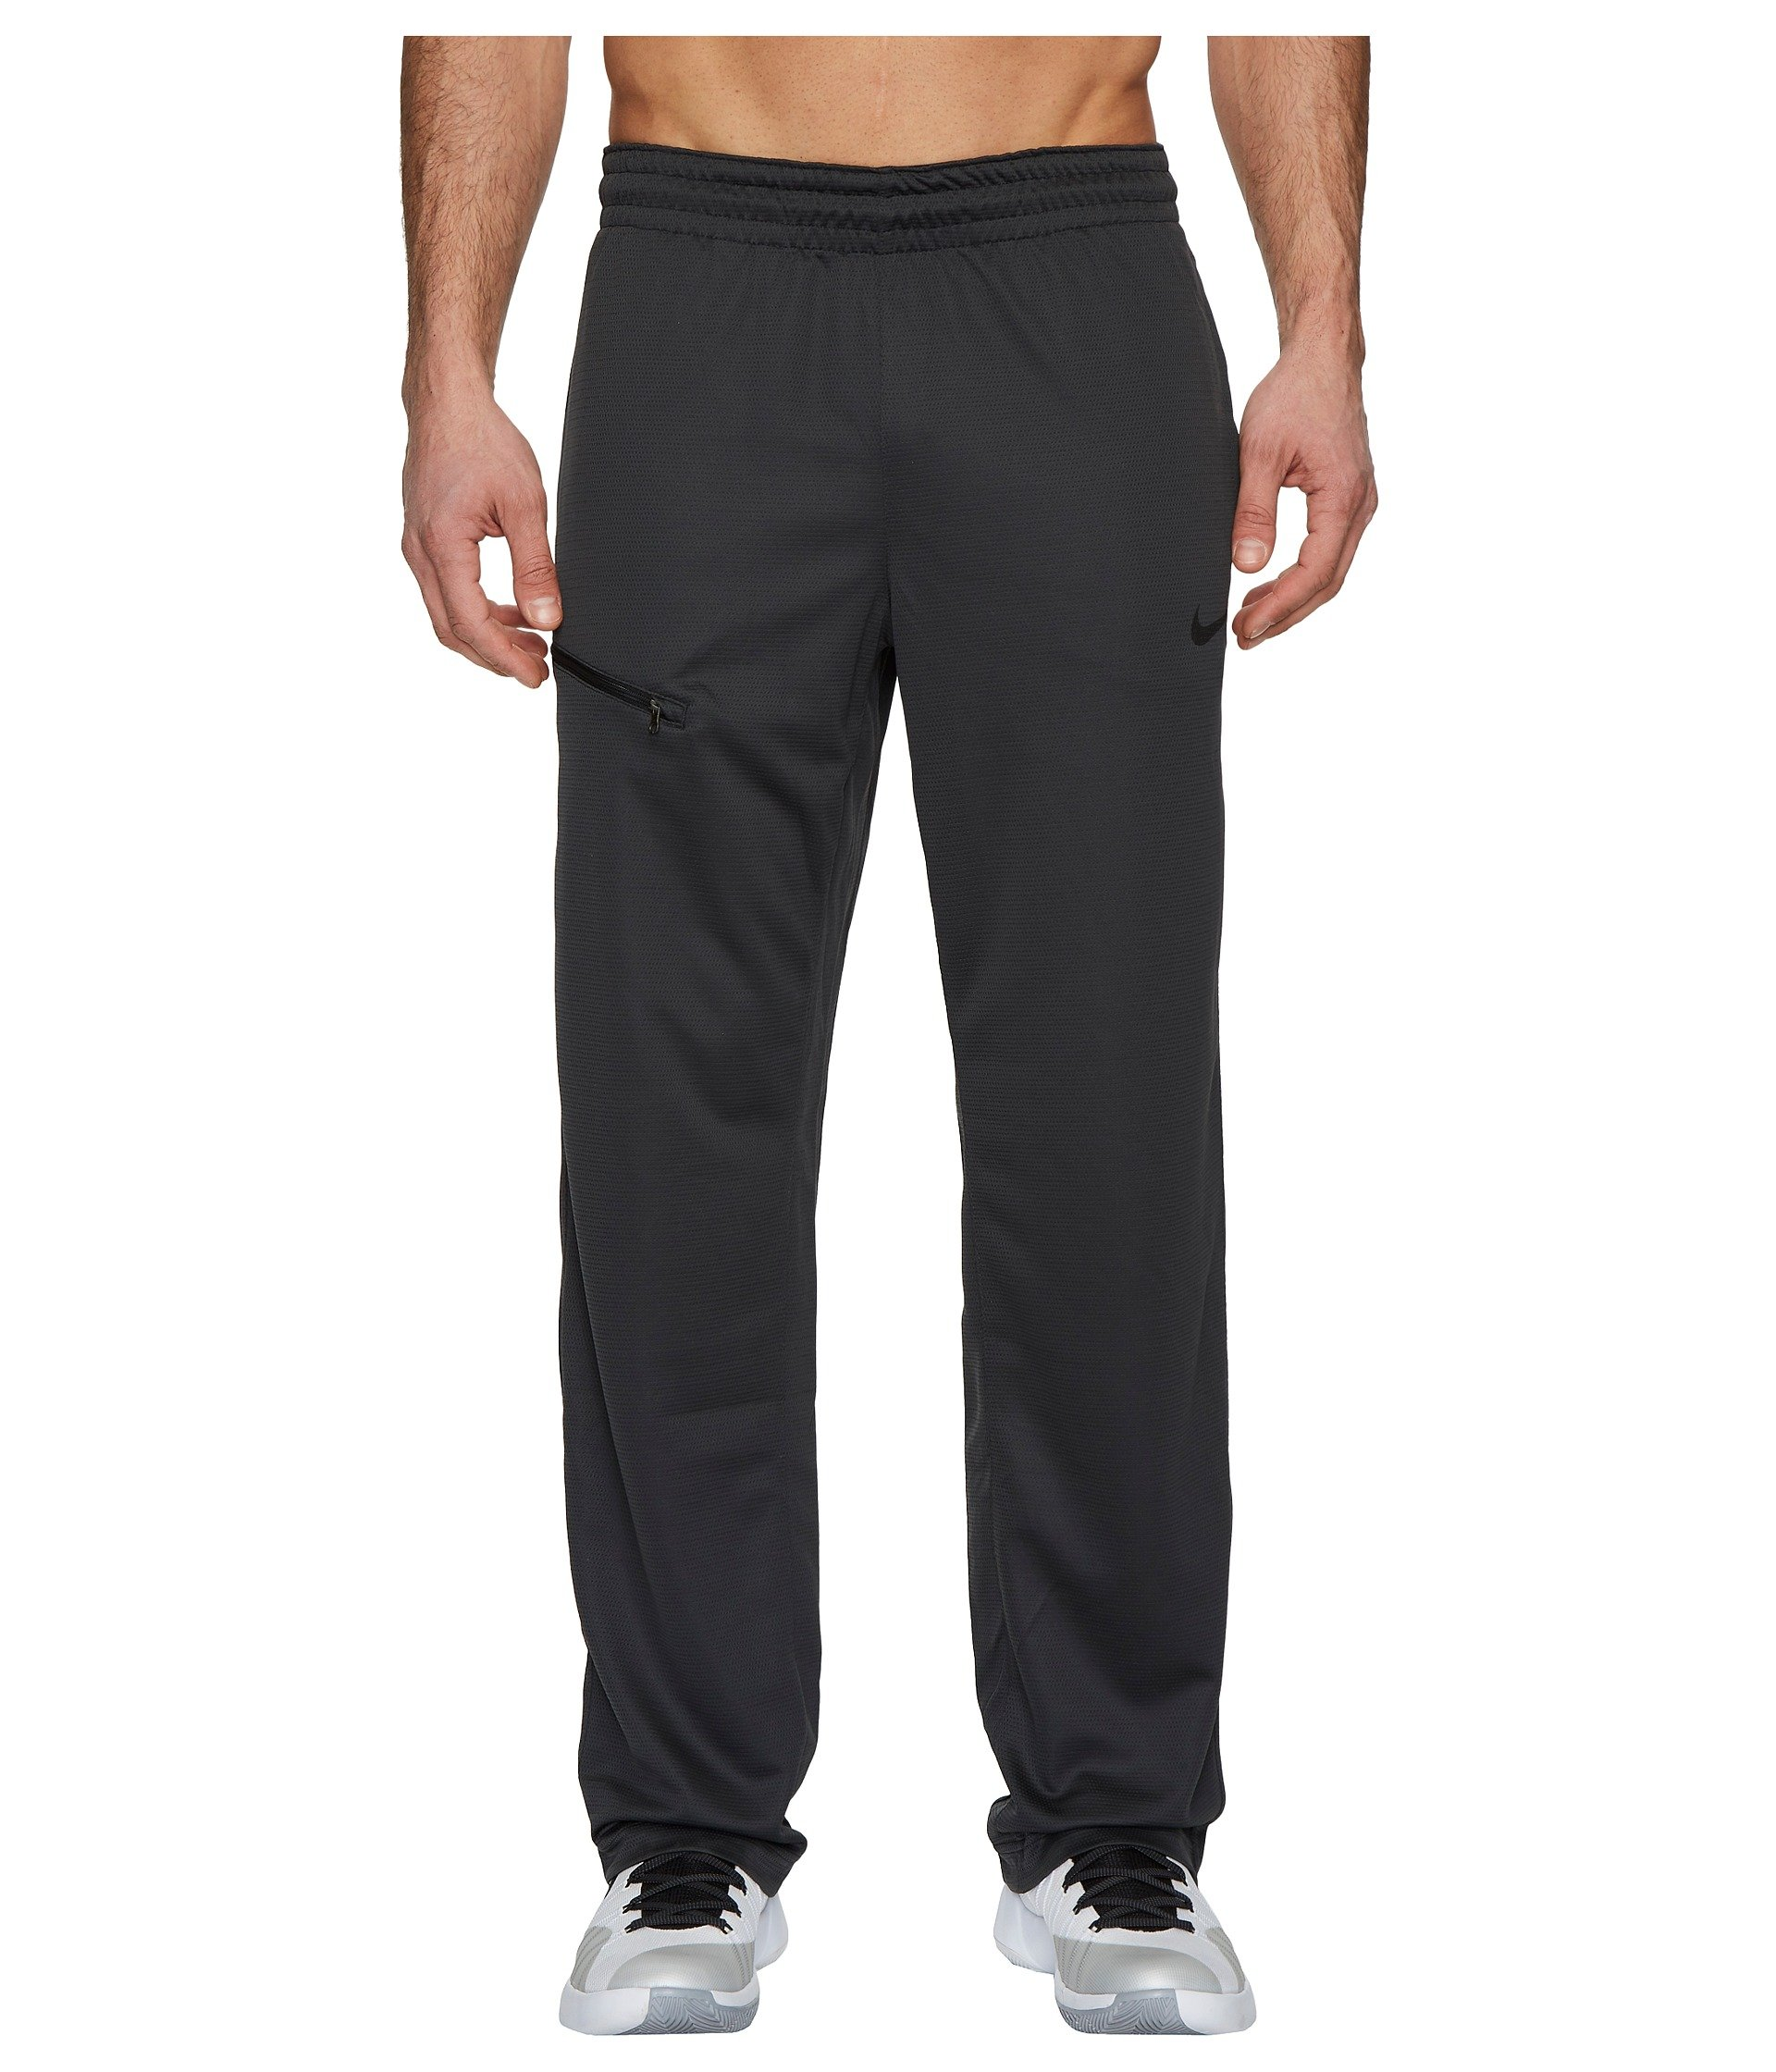 NIKE Men's Dry Rivalry Pants, Anthracite/Black, S by Nike